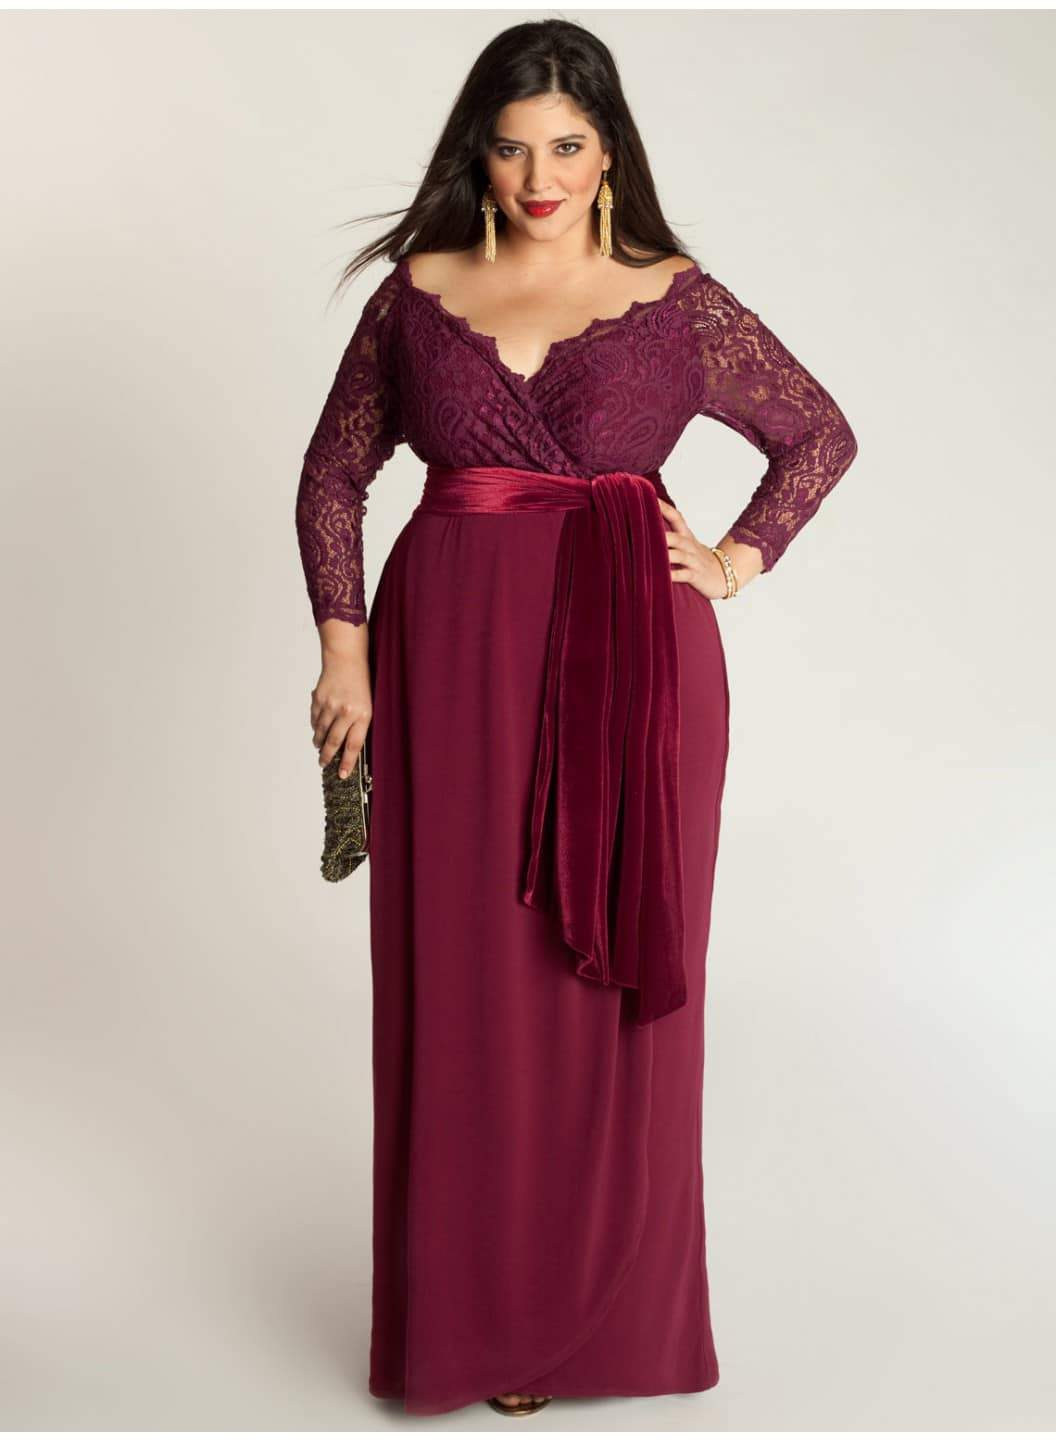 Igigi Anastasia Dress